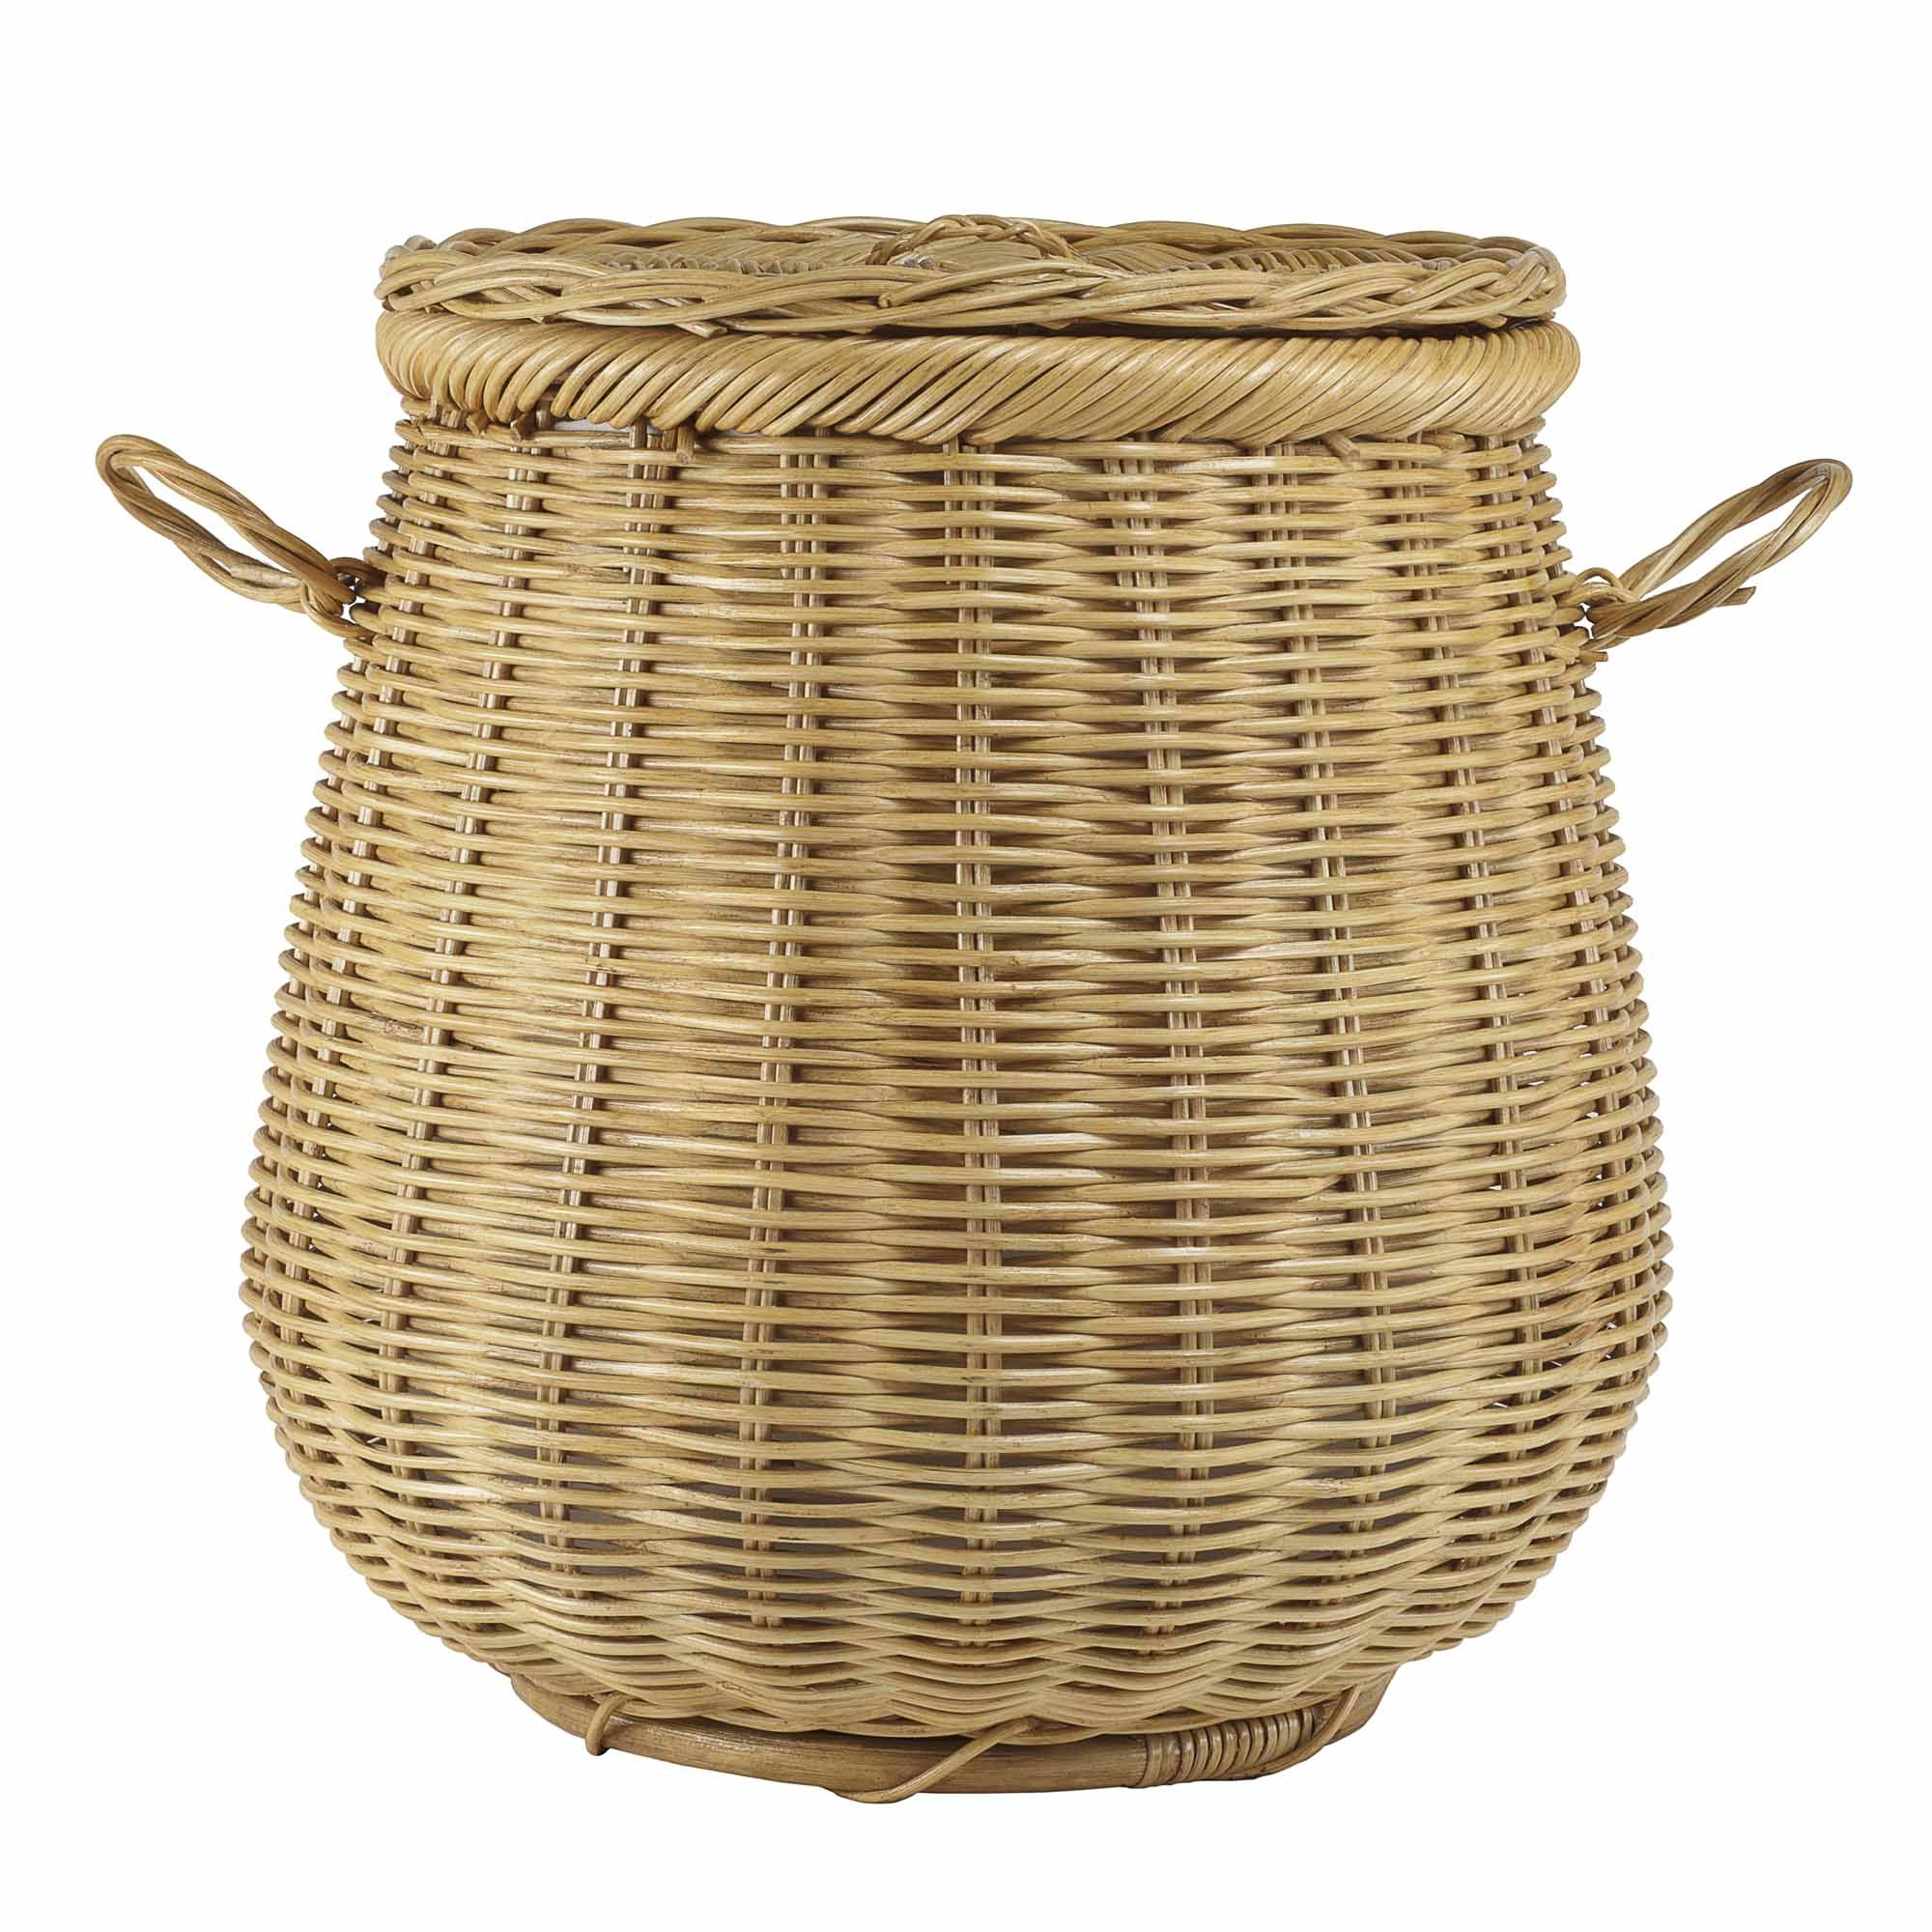 Wonderful Wicker Laundry Basket With Lid - Wicker Basket PNG